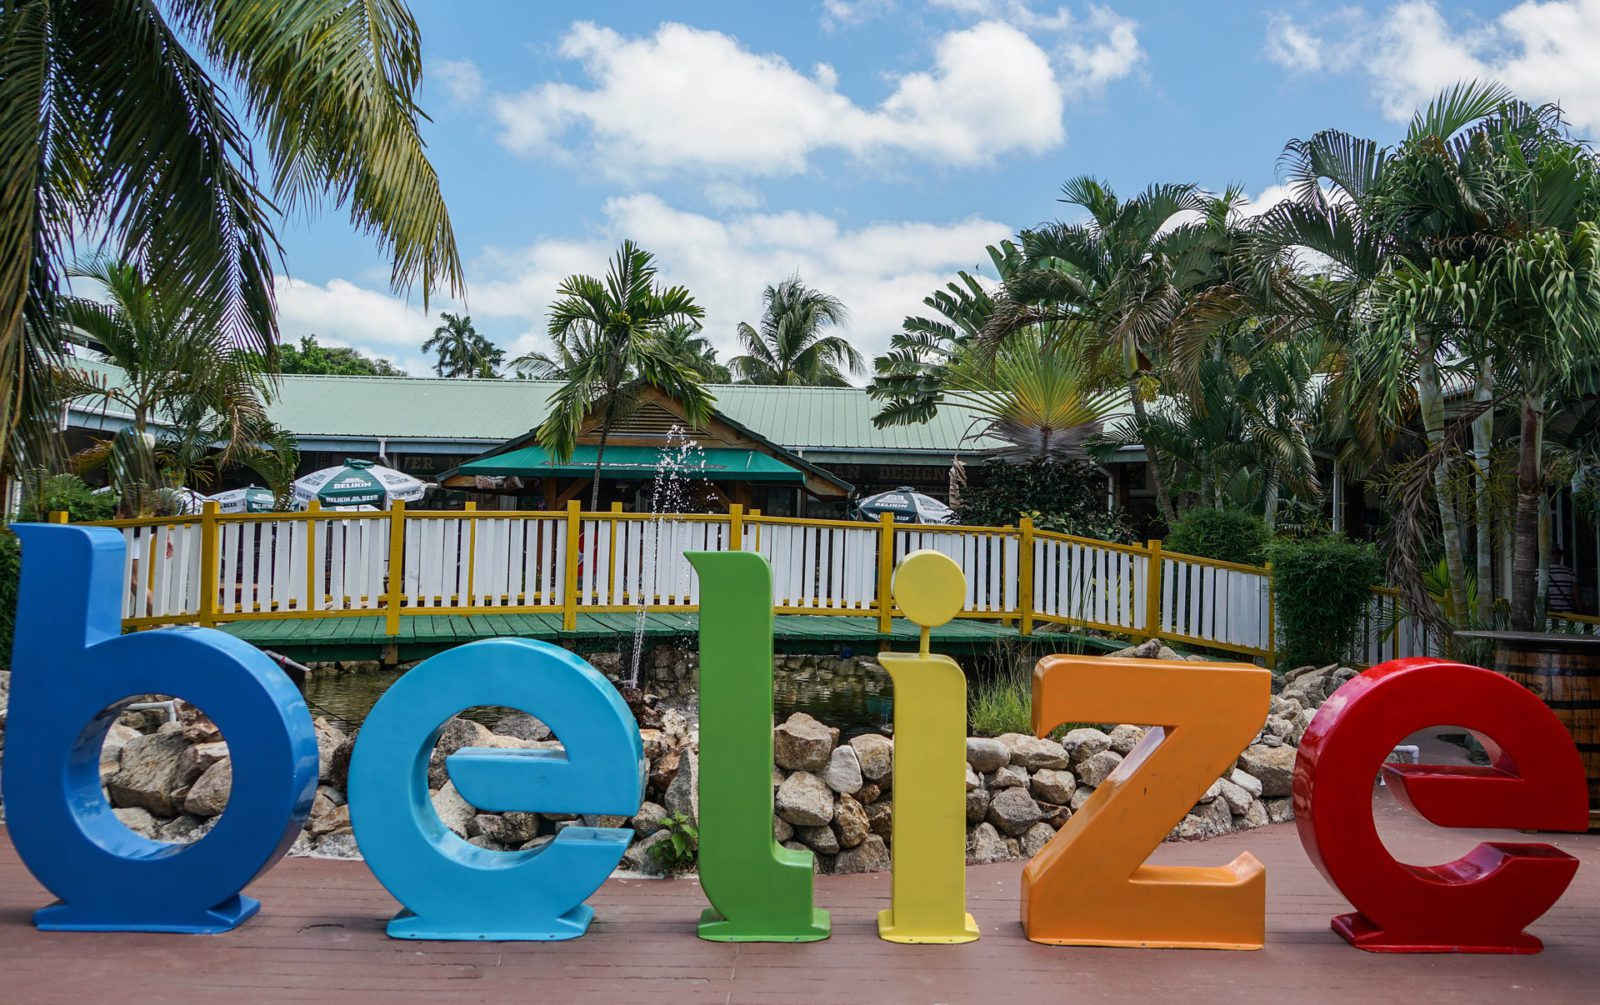 Flight Deal Round Trip From Los Angeles Area to Belize #losangeles #belize #extendedweekend